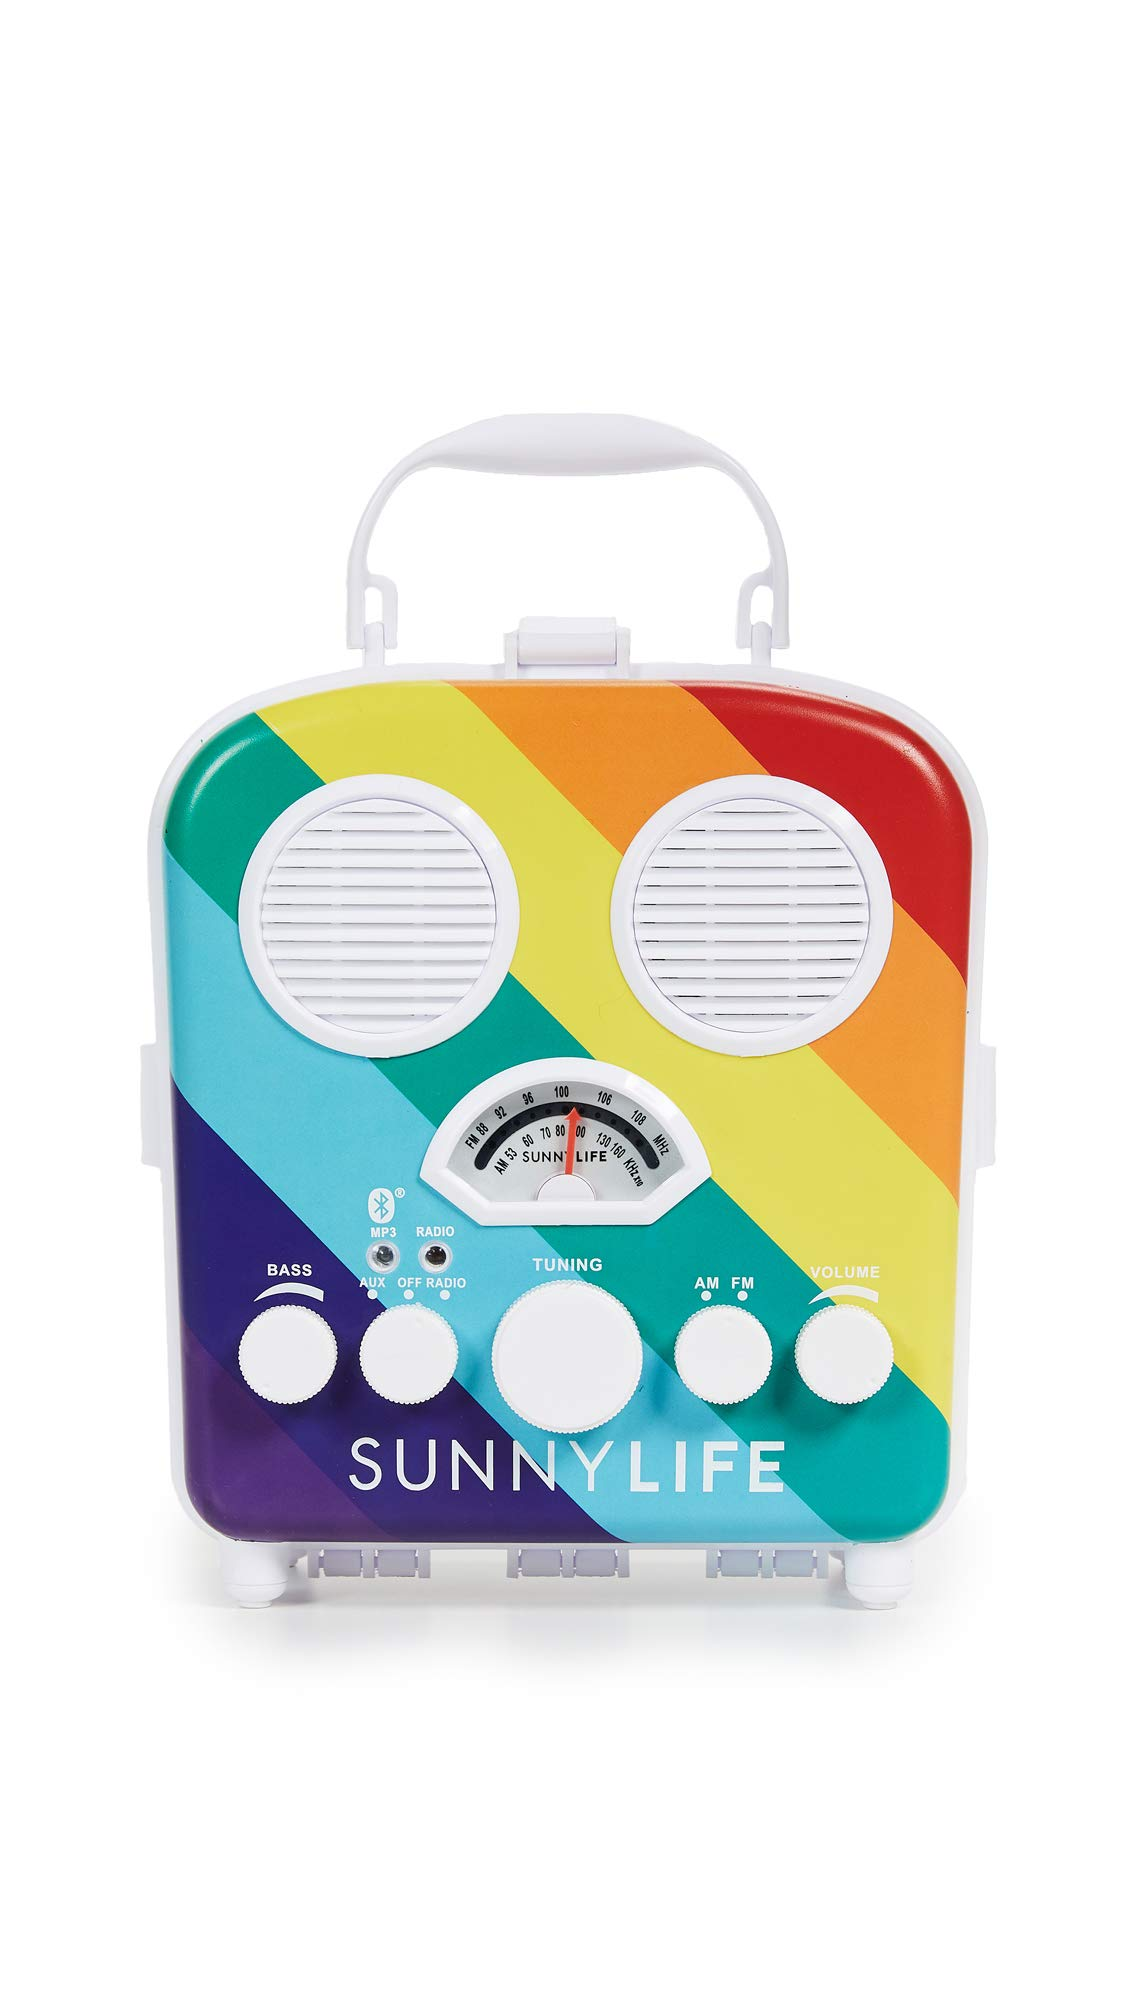 SunnyLife Beach Sounds Speaker, Rainbow, One Size by SunnyLIFE